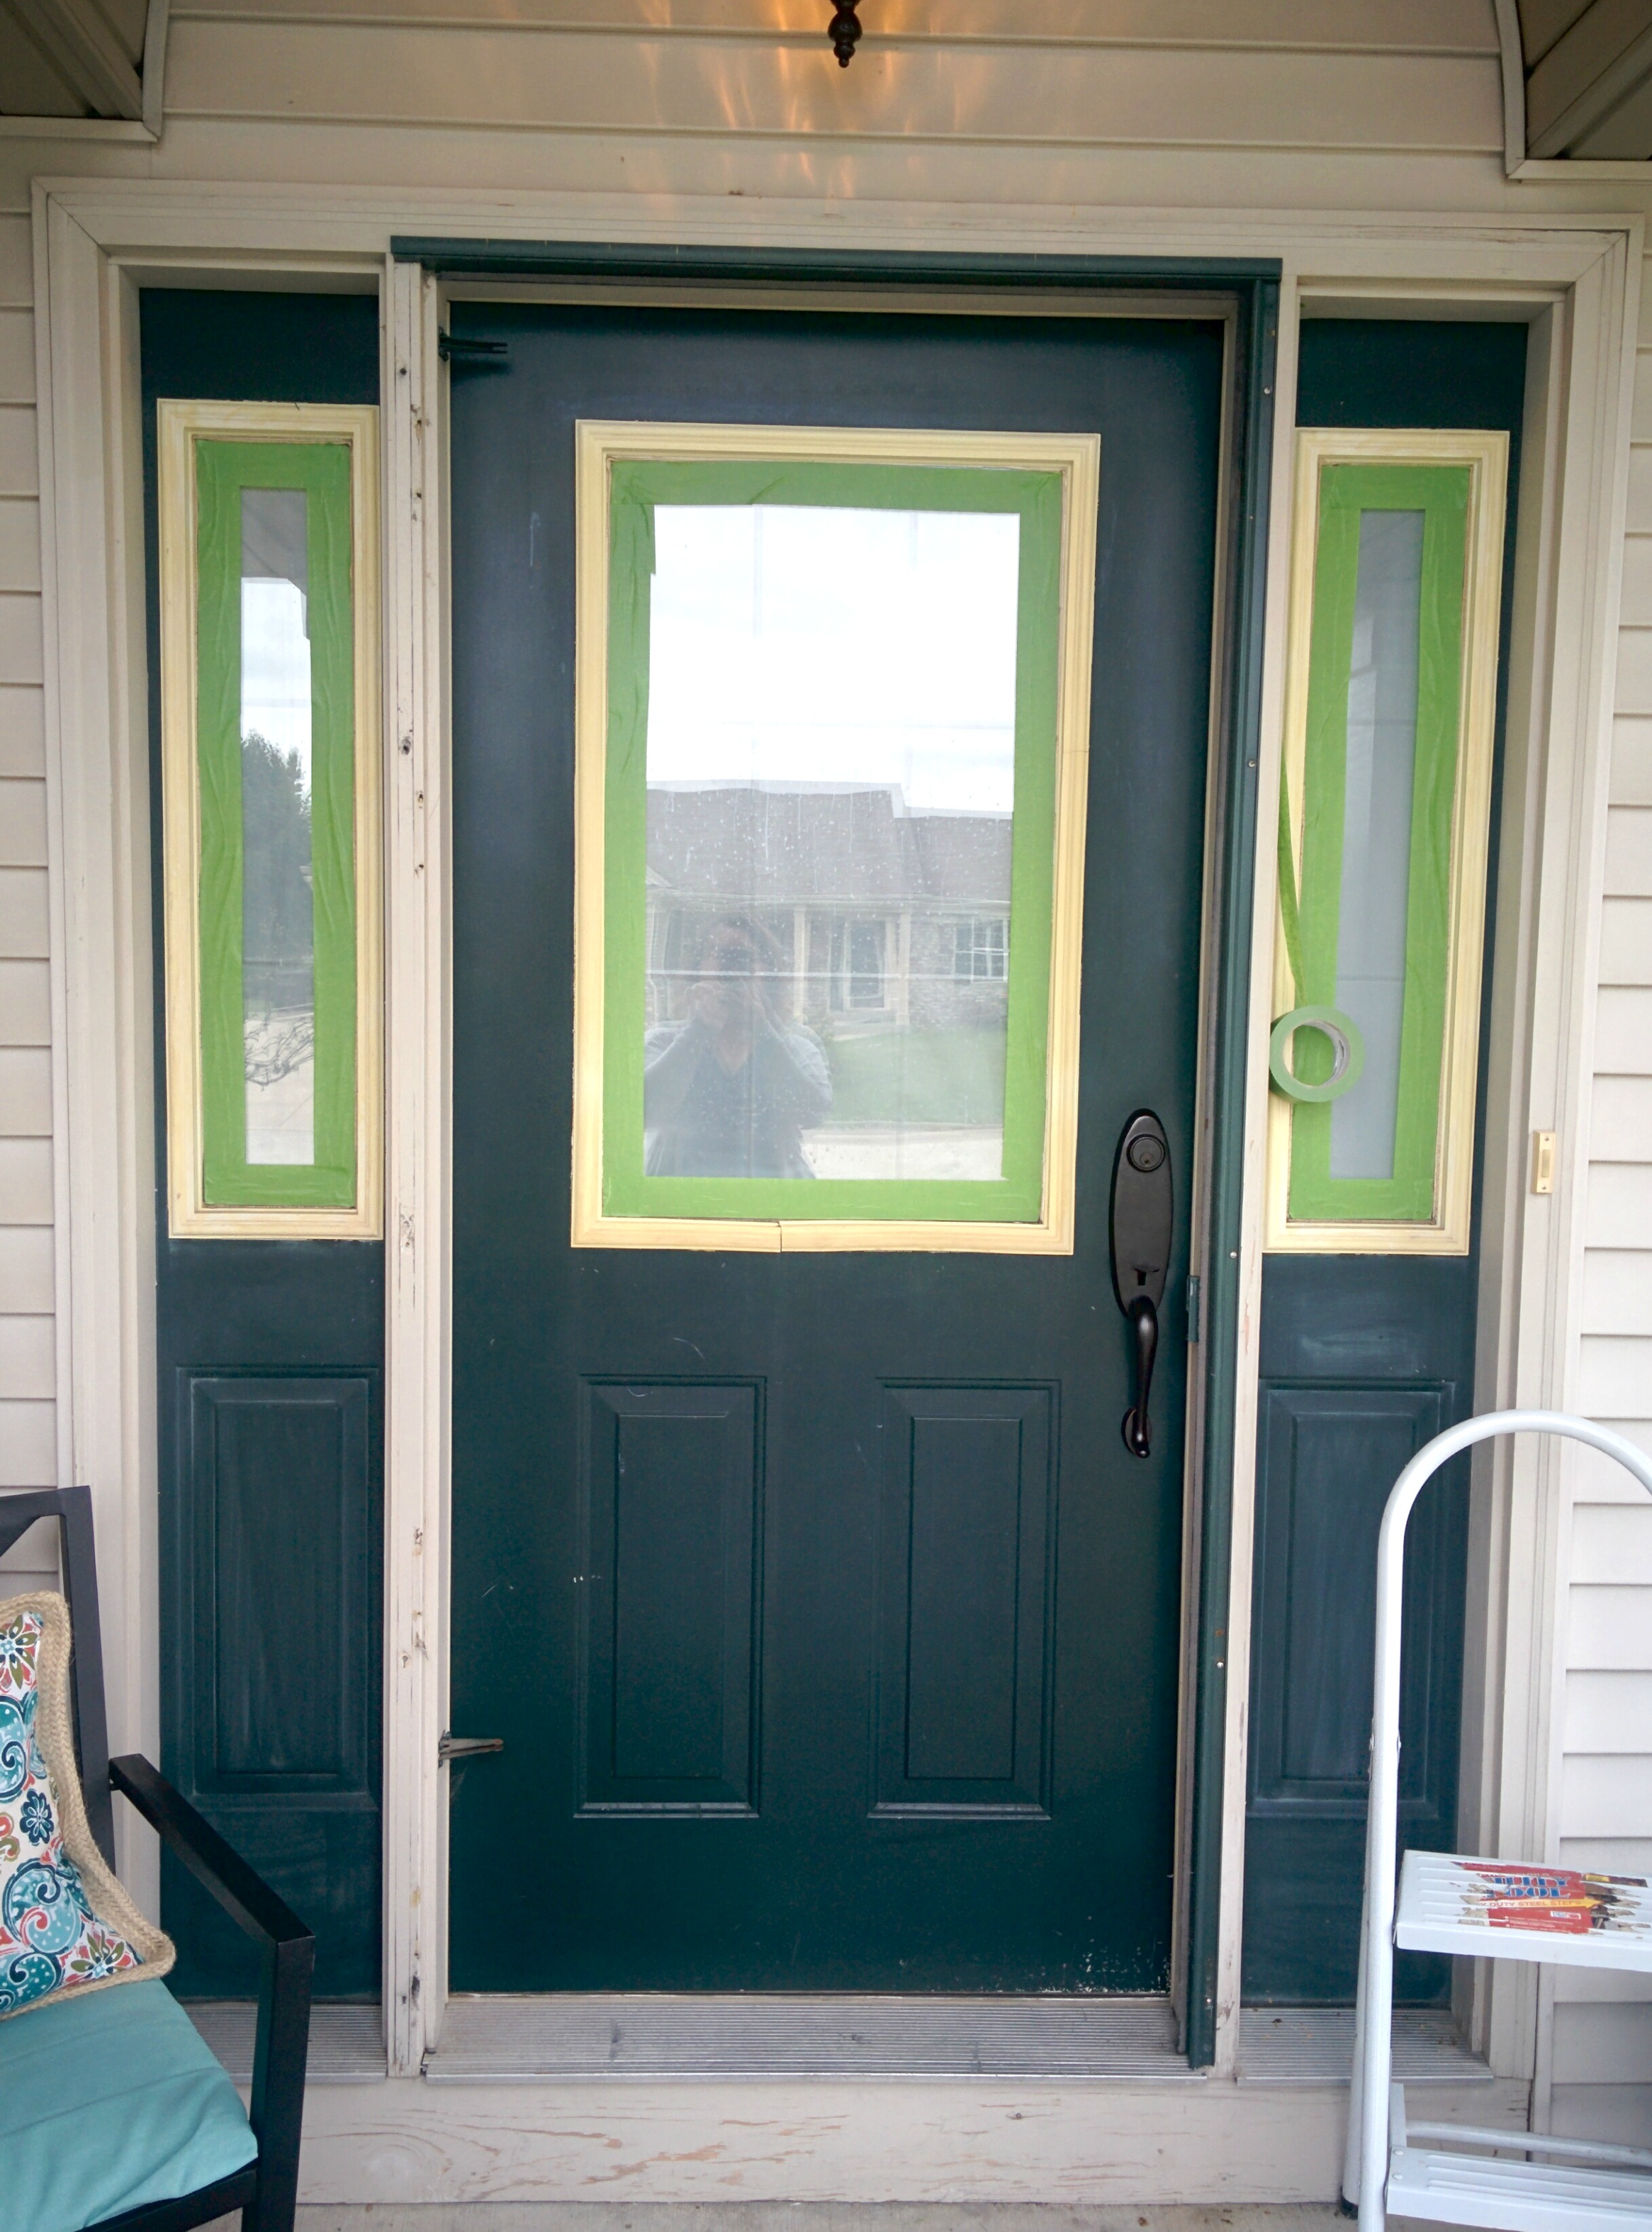 Adding curb appeal how to paint shutters and front door Dark green front door paint